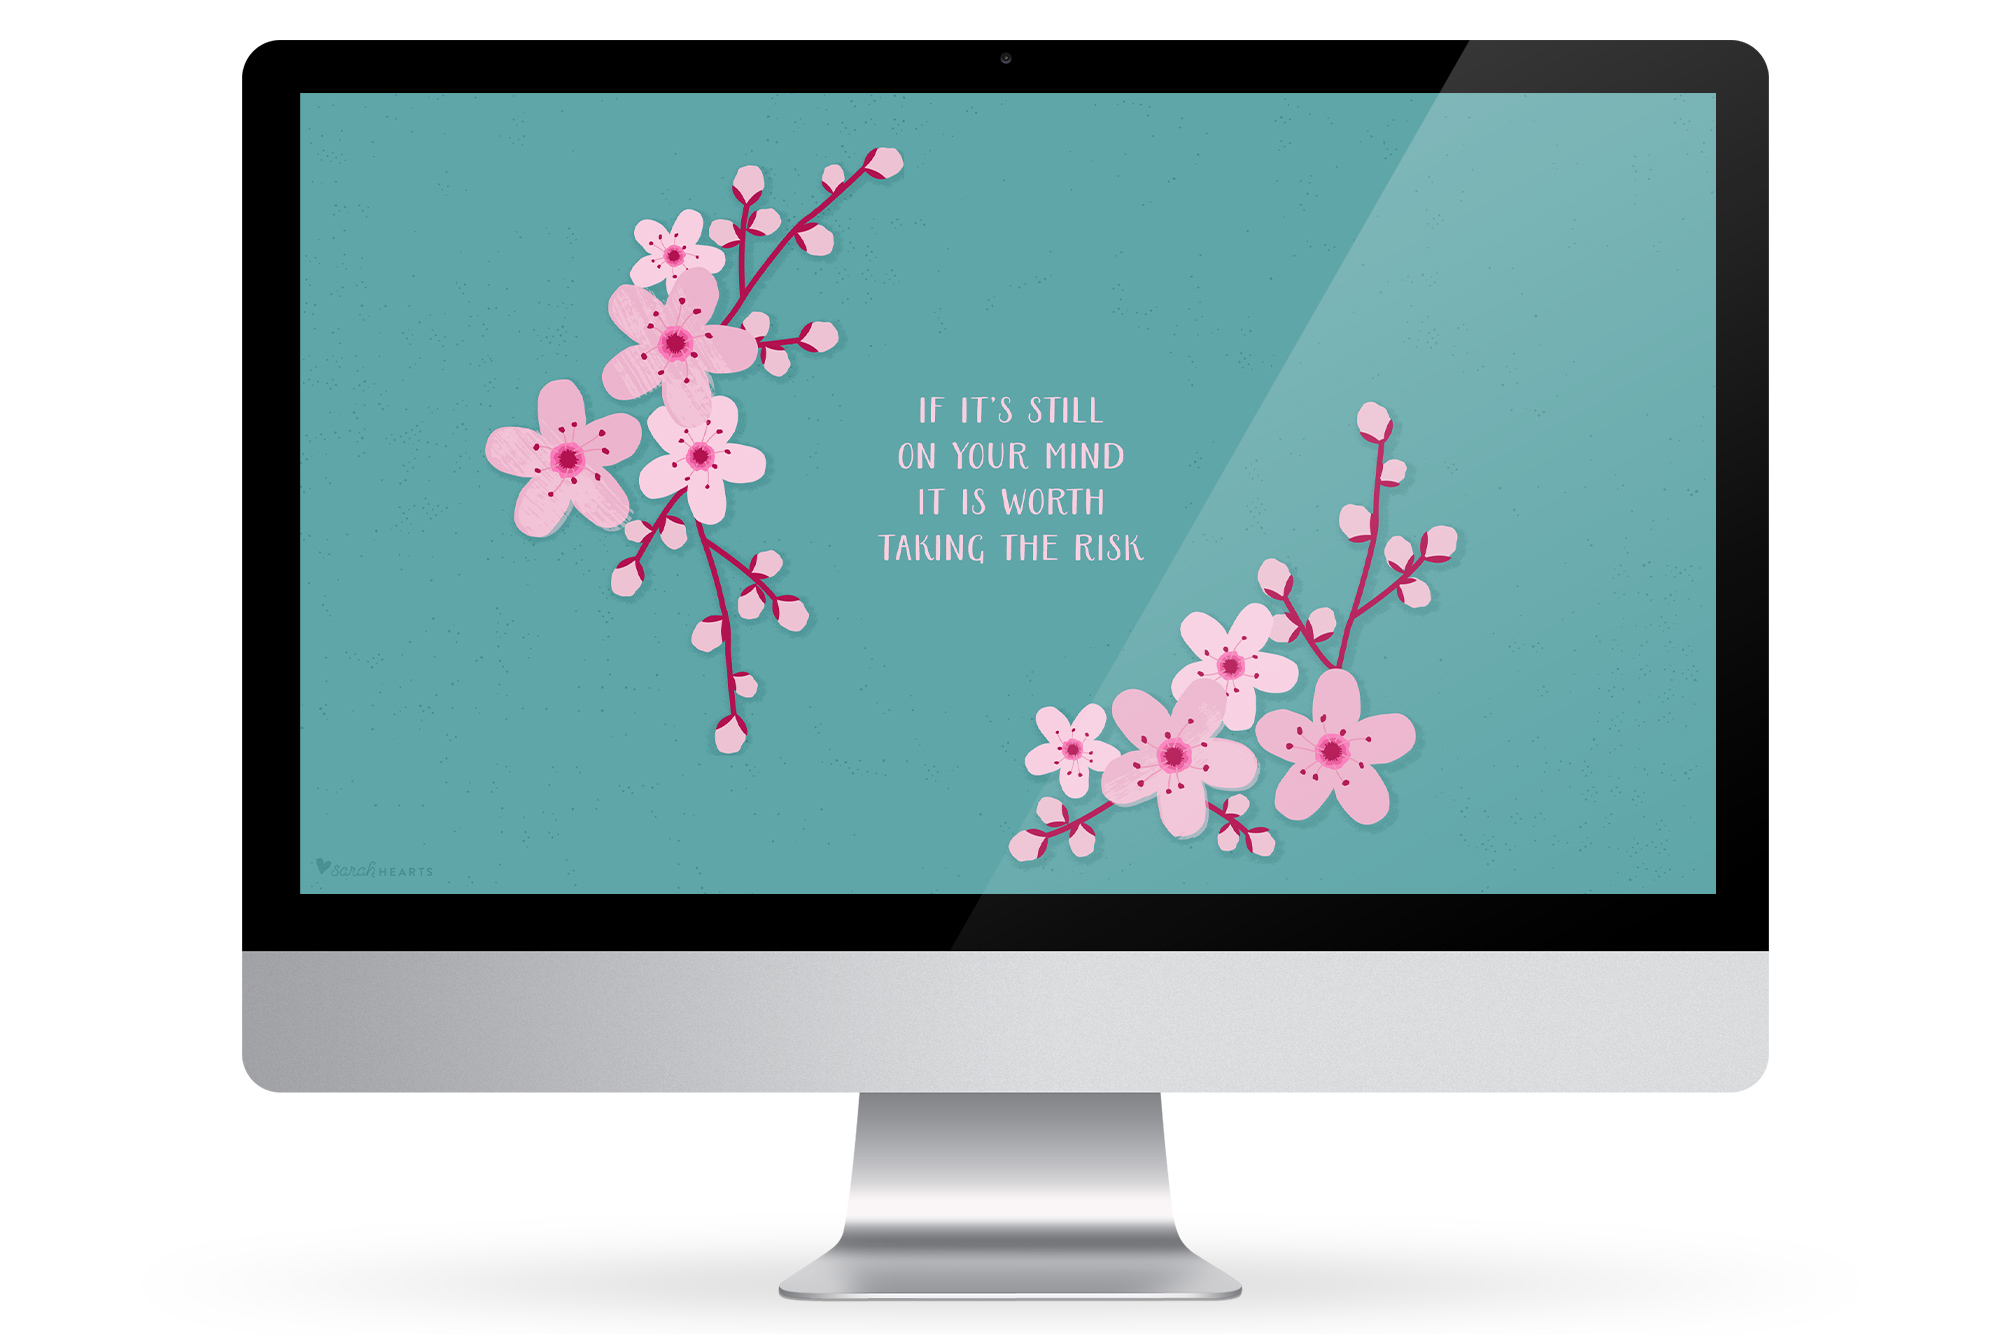 Add some beauty to your computer, phone or tablet with this inspiring, free cherry blossom wallpaper!